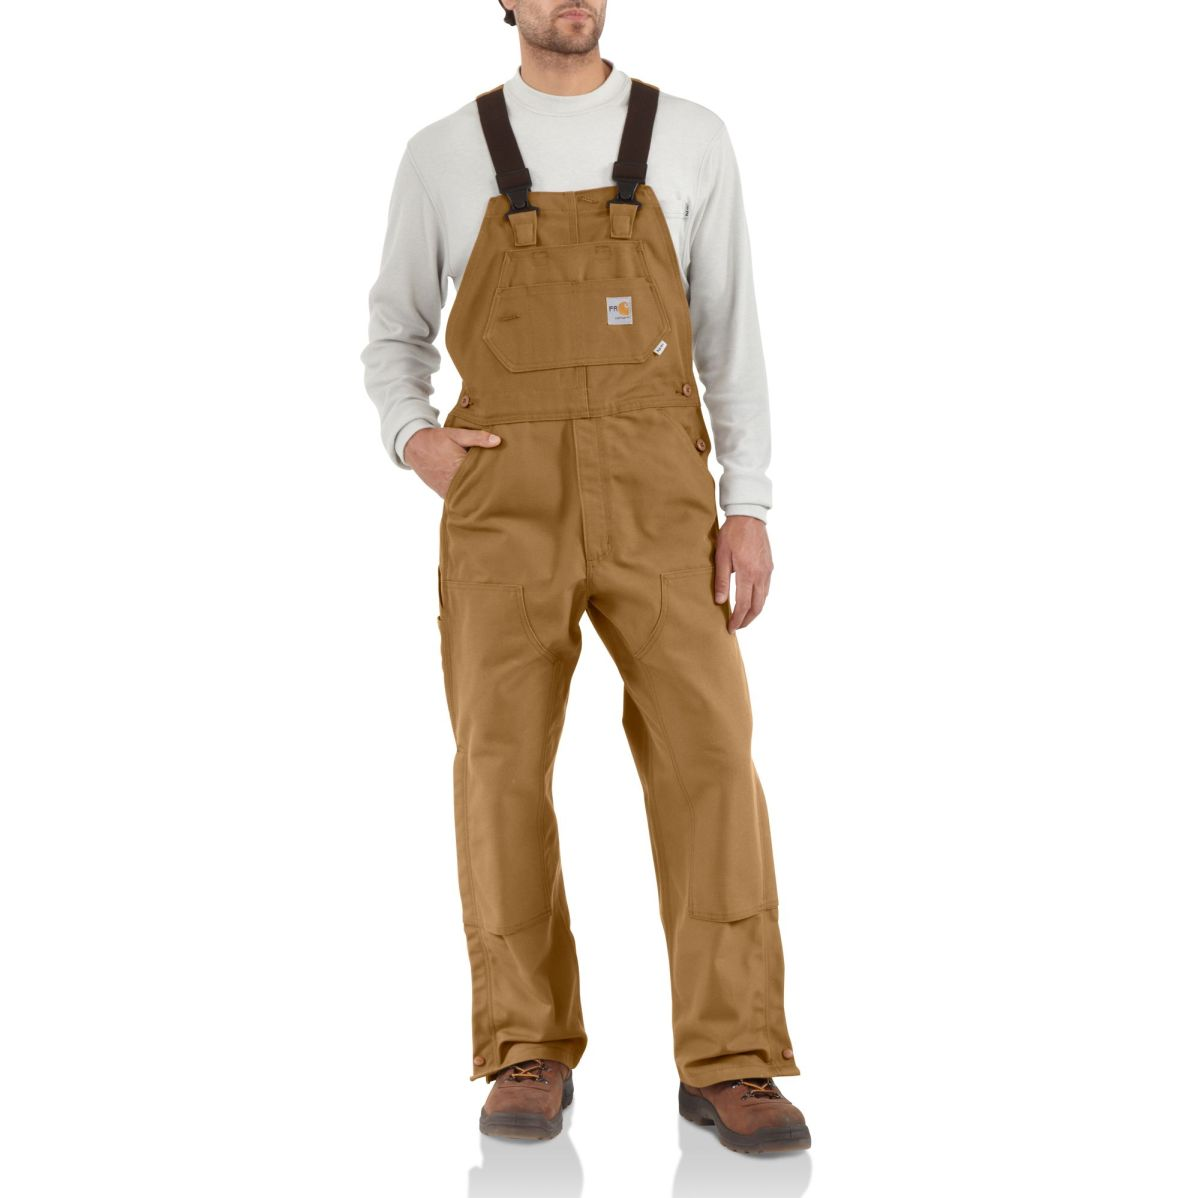 101627 Mens Flame-Resistant Duck Bib Overall-